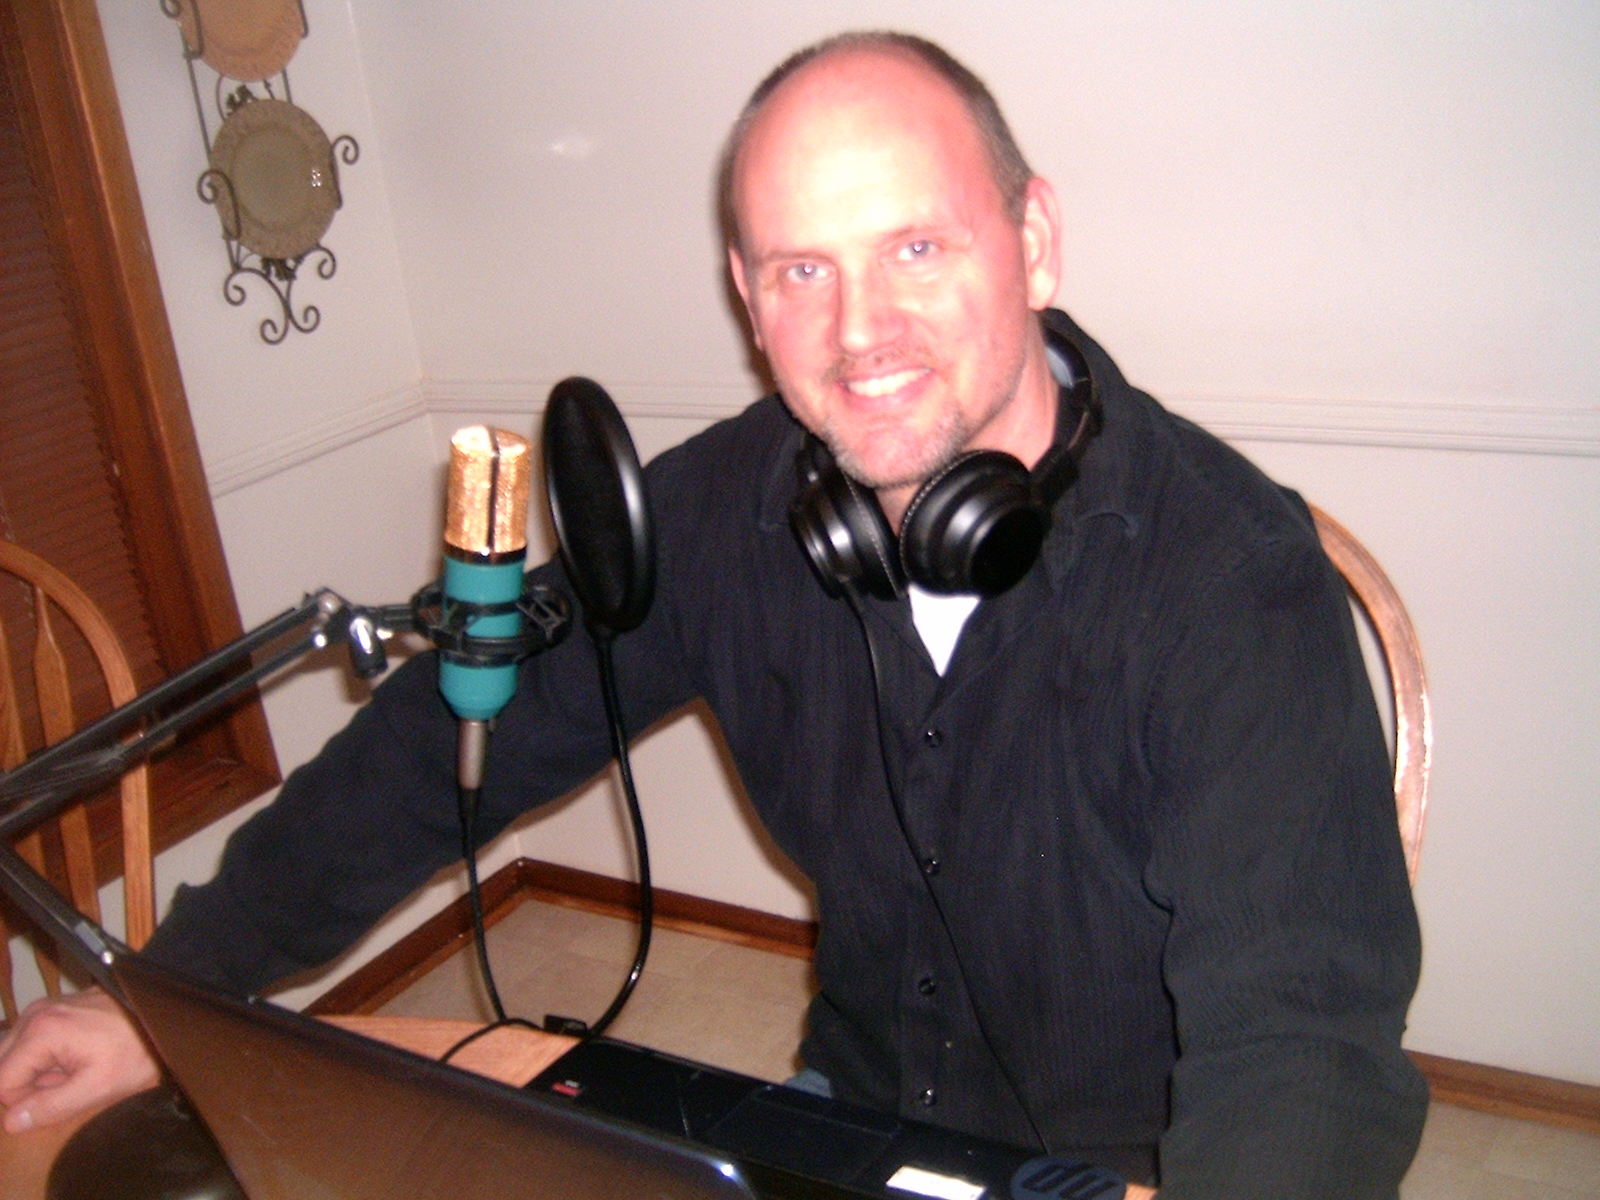 record and a quality American male voiceover